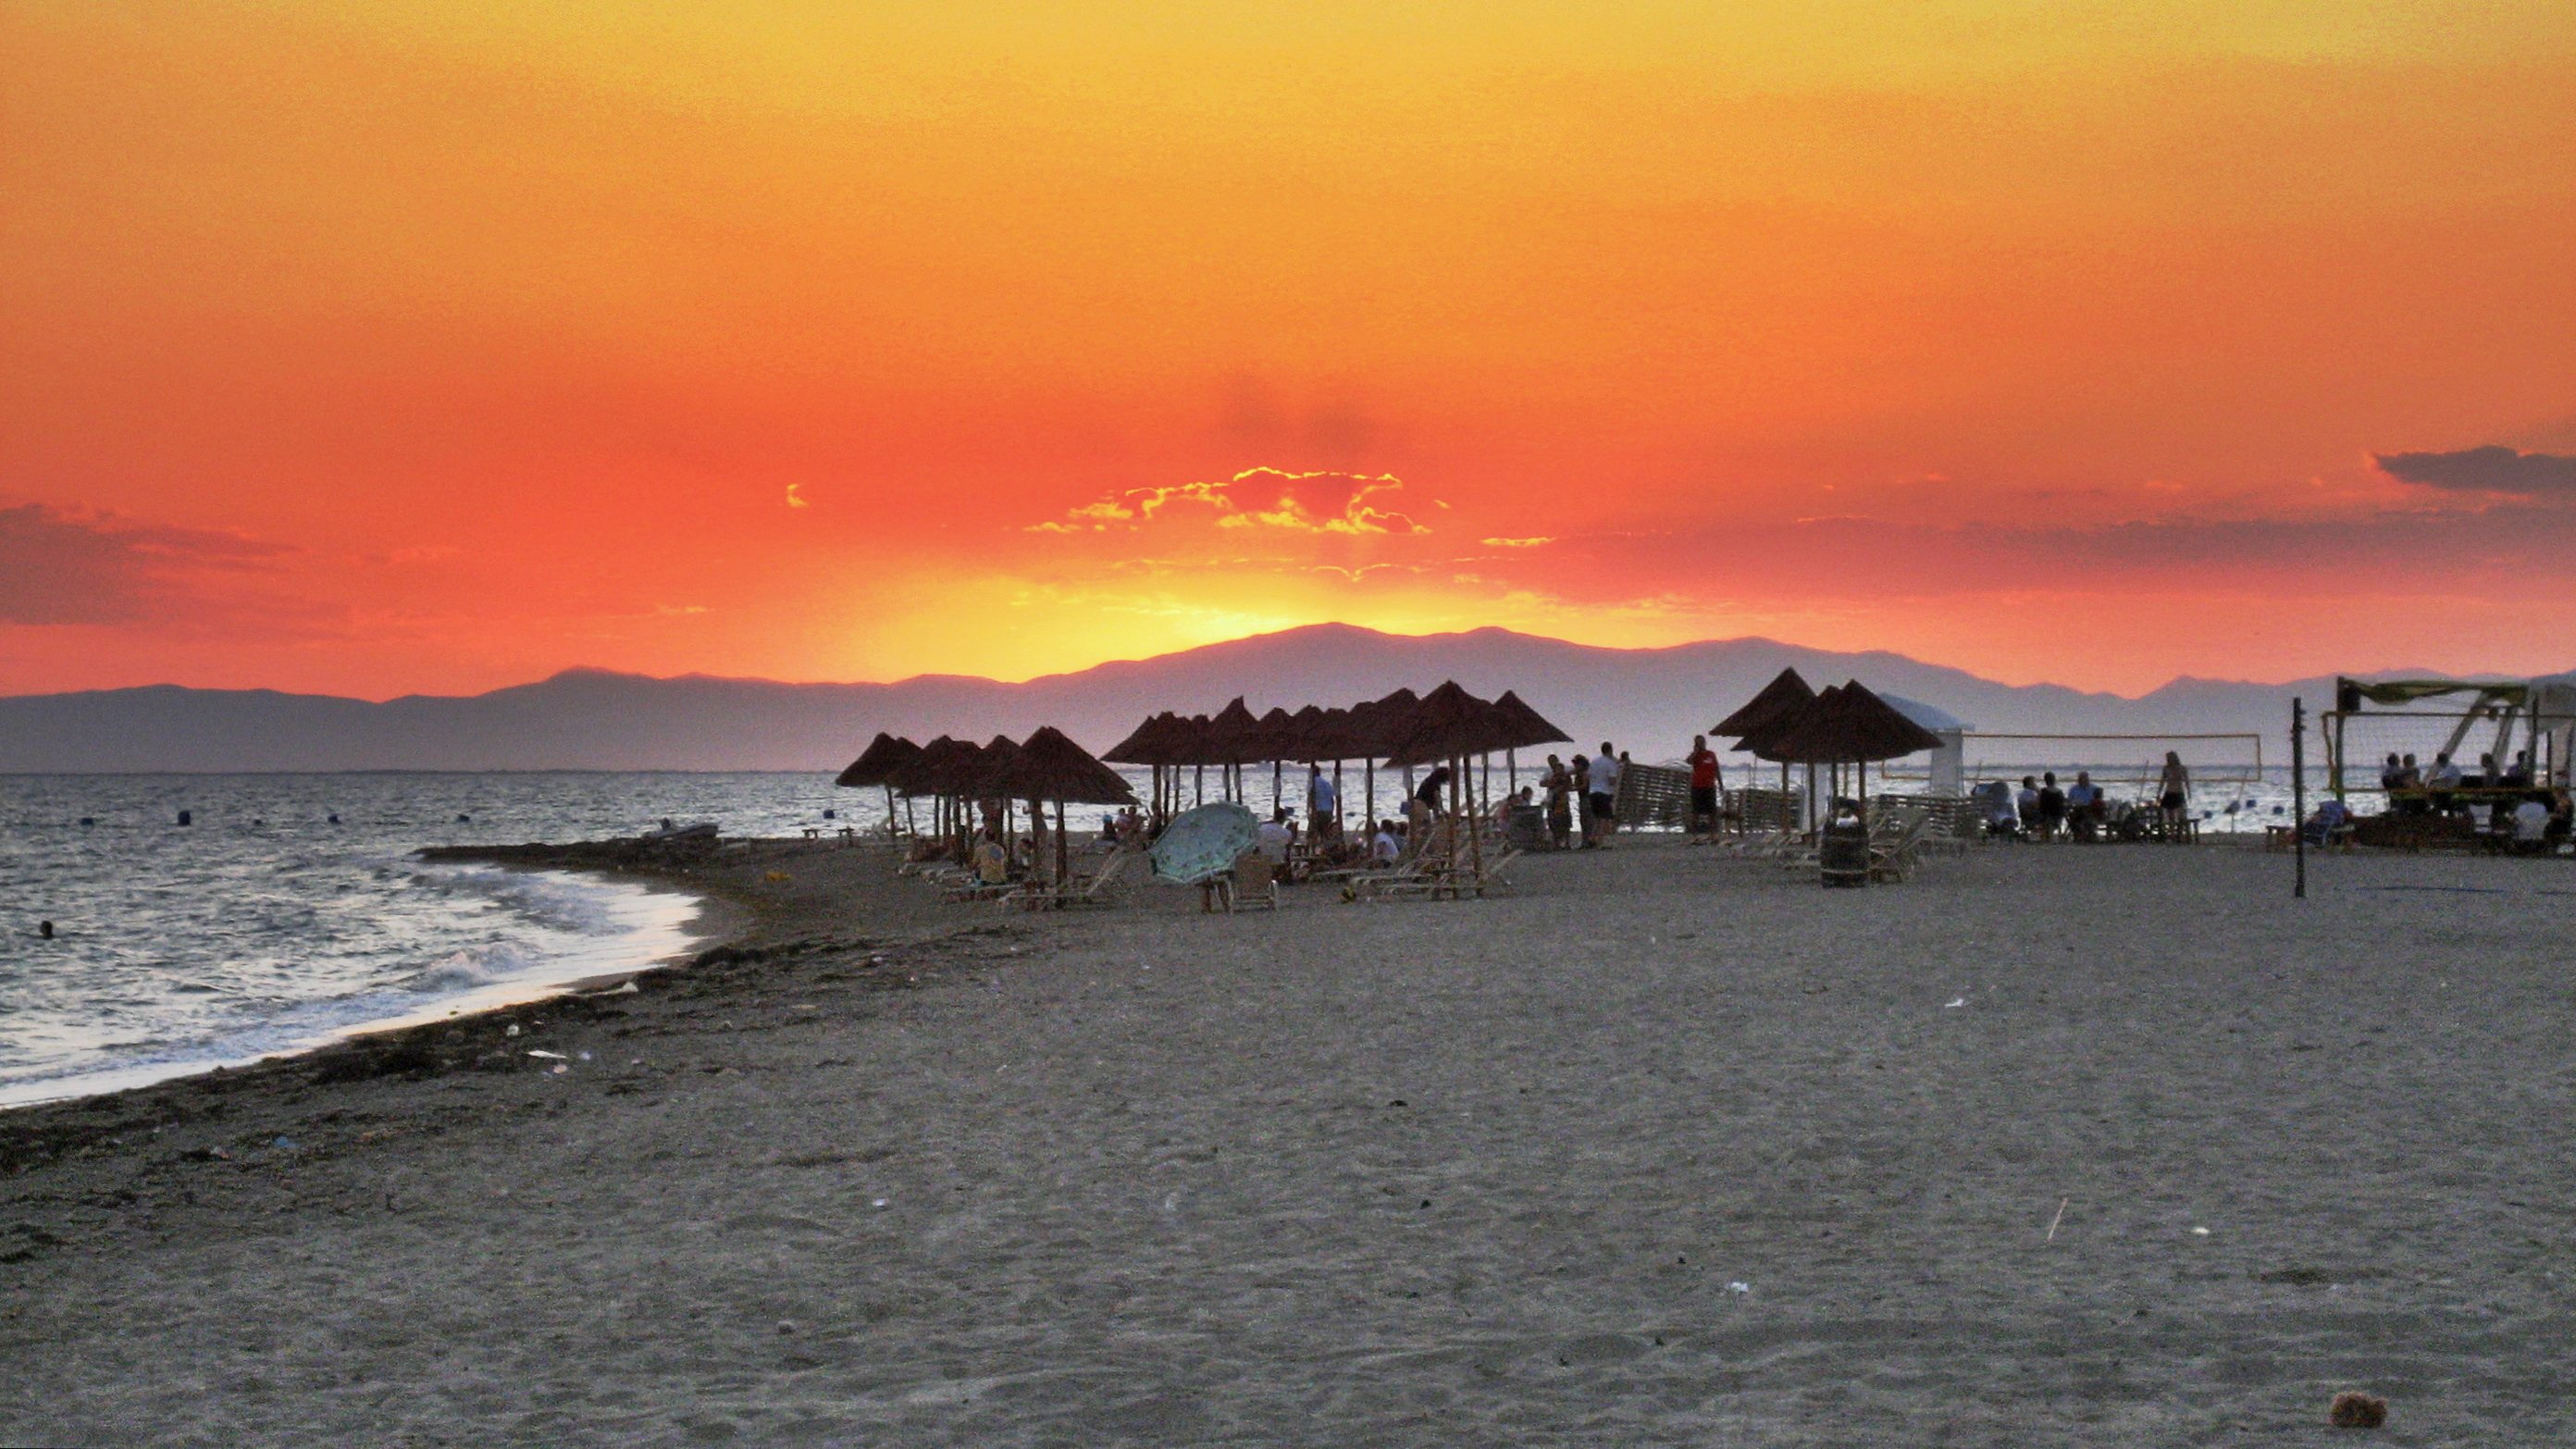 Sunset Beach The Cyclades, Sunset - Beach Bar - Anggelochori Photo from Enia in Thessaloniki ...